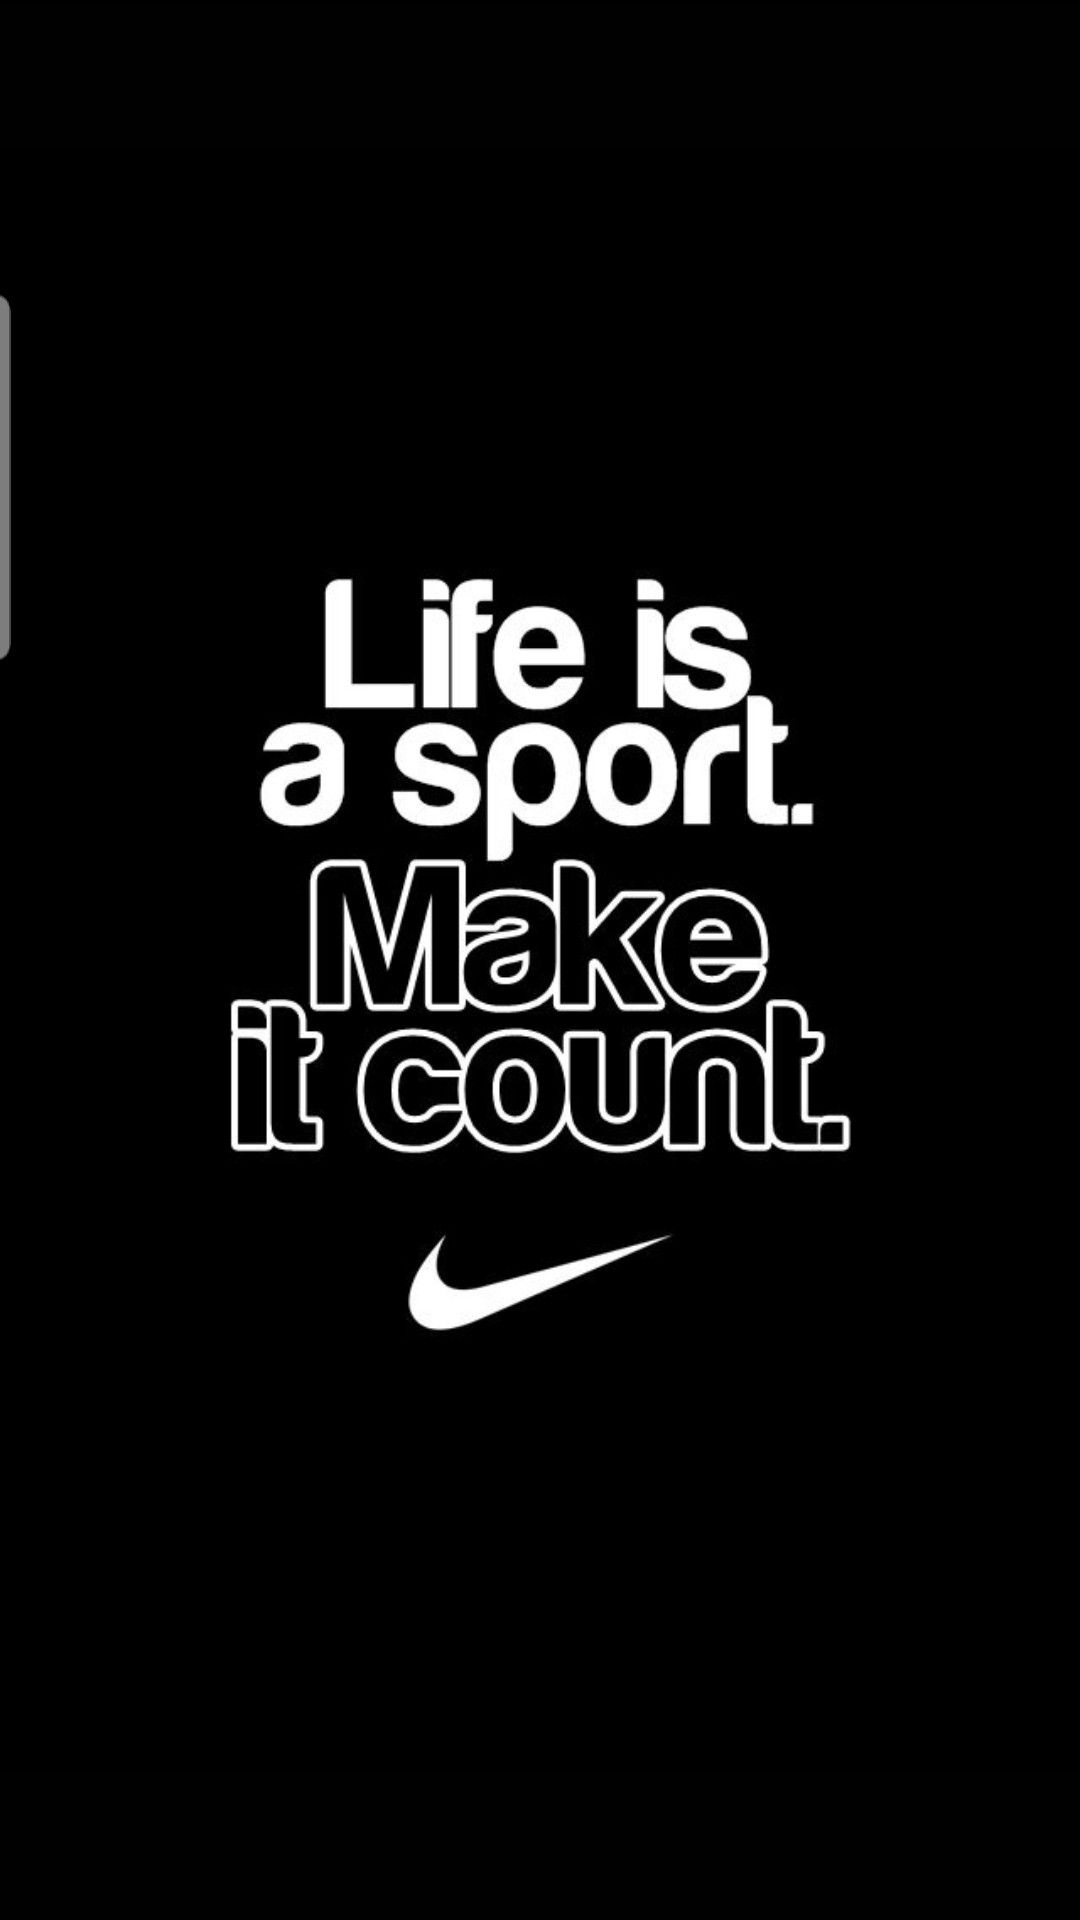 Pin By Archie Douglas On Sportz Wallpaperz Nike Quotes